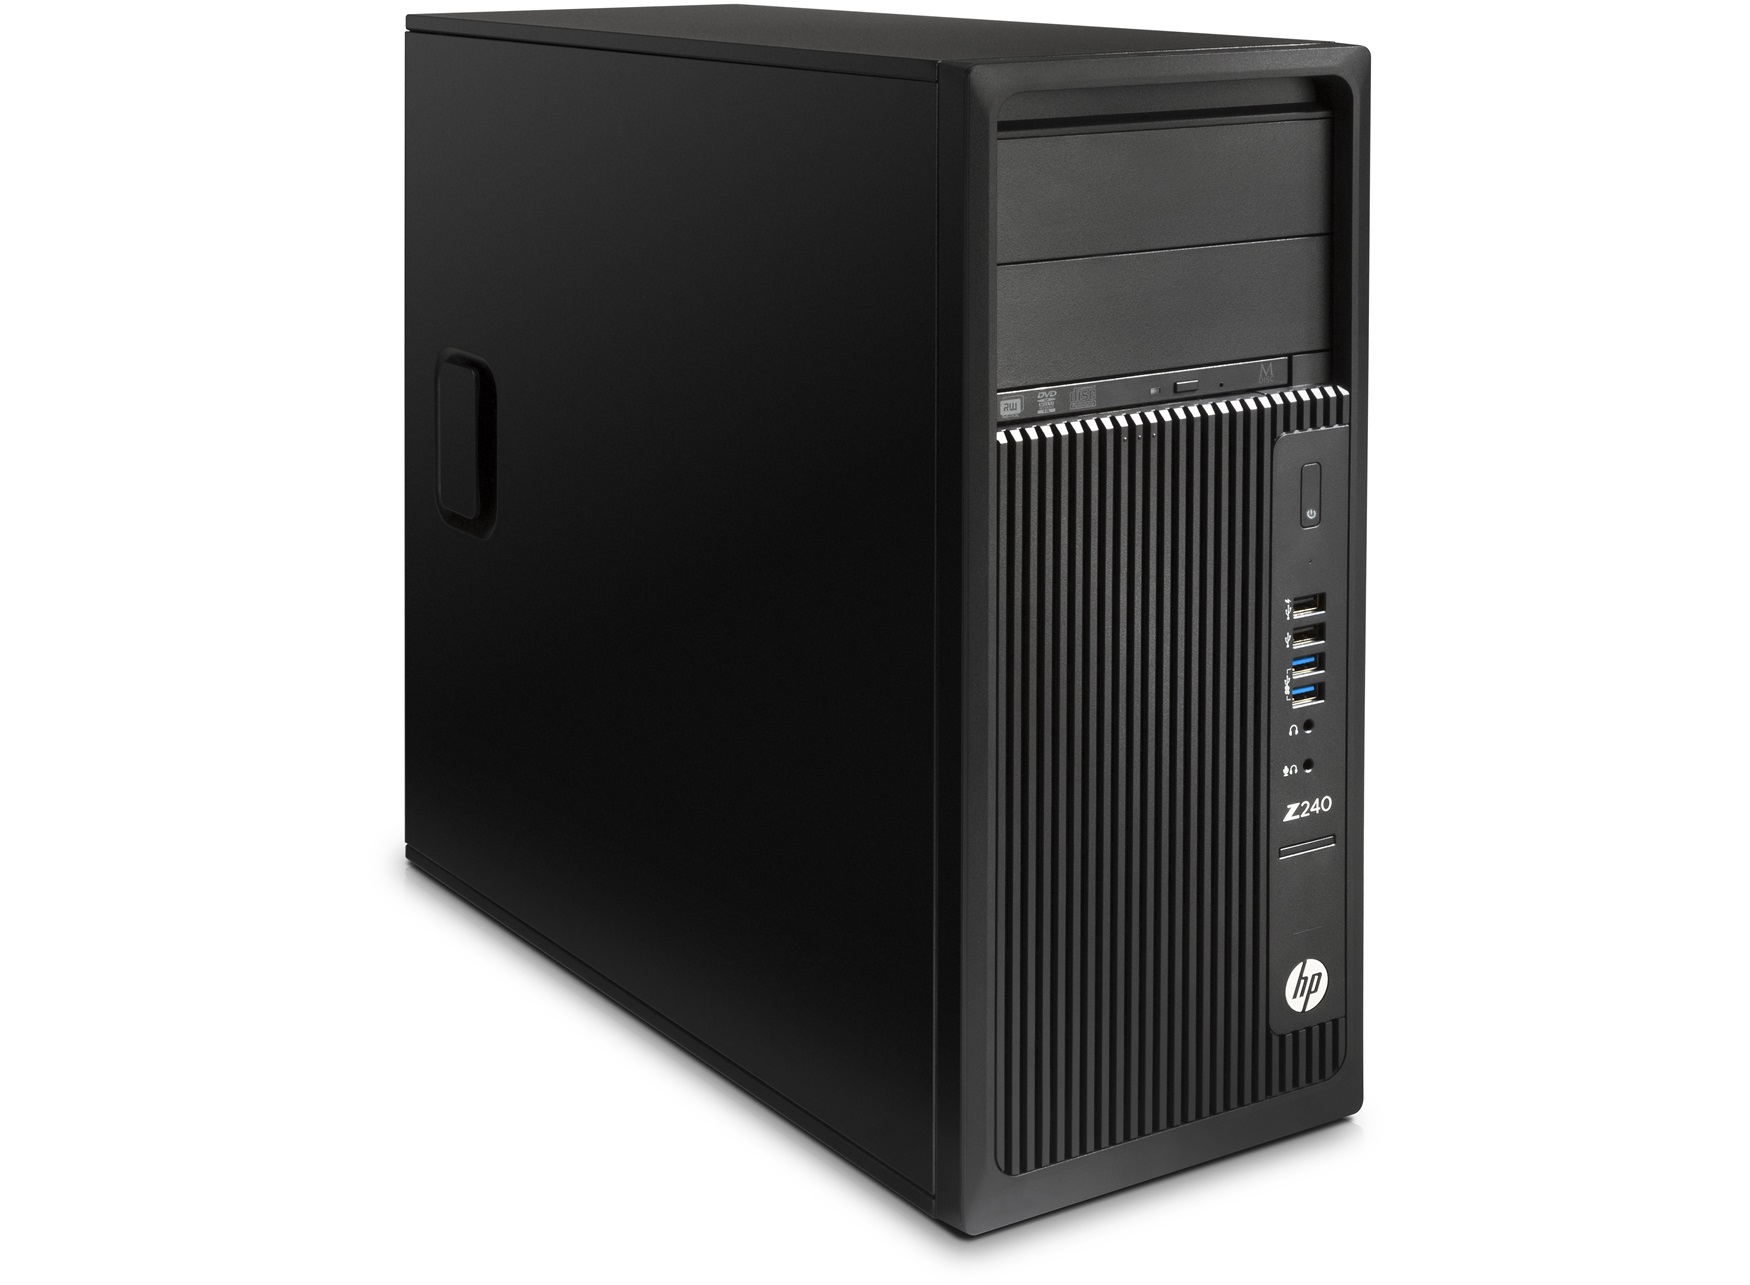 HP Z240 TWR Intel i7-6700 3.4GHz/8GB DDR4-2133 nECC (2x4GB)/256GB SSD/Intel HD GFX 530/Win 10 Pro